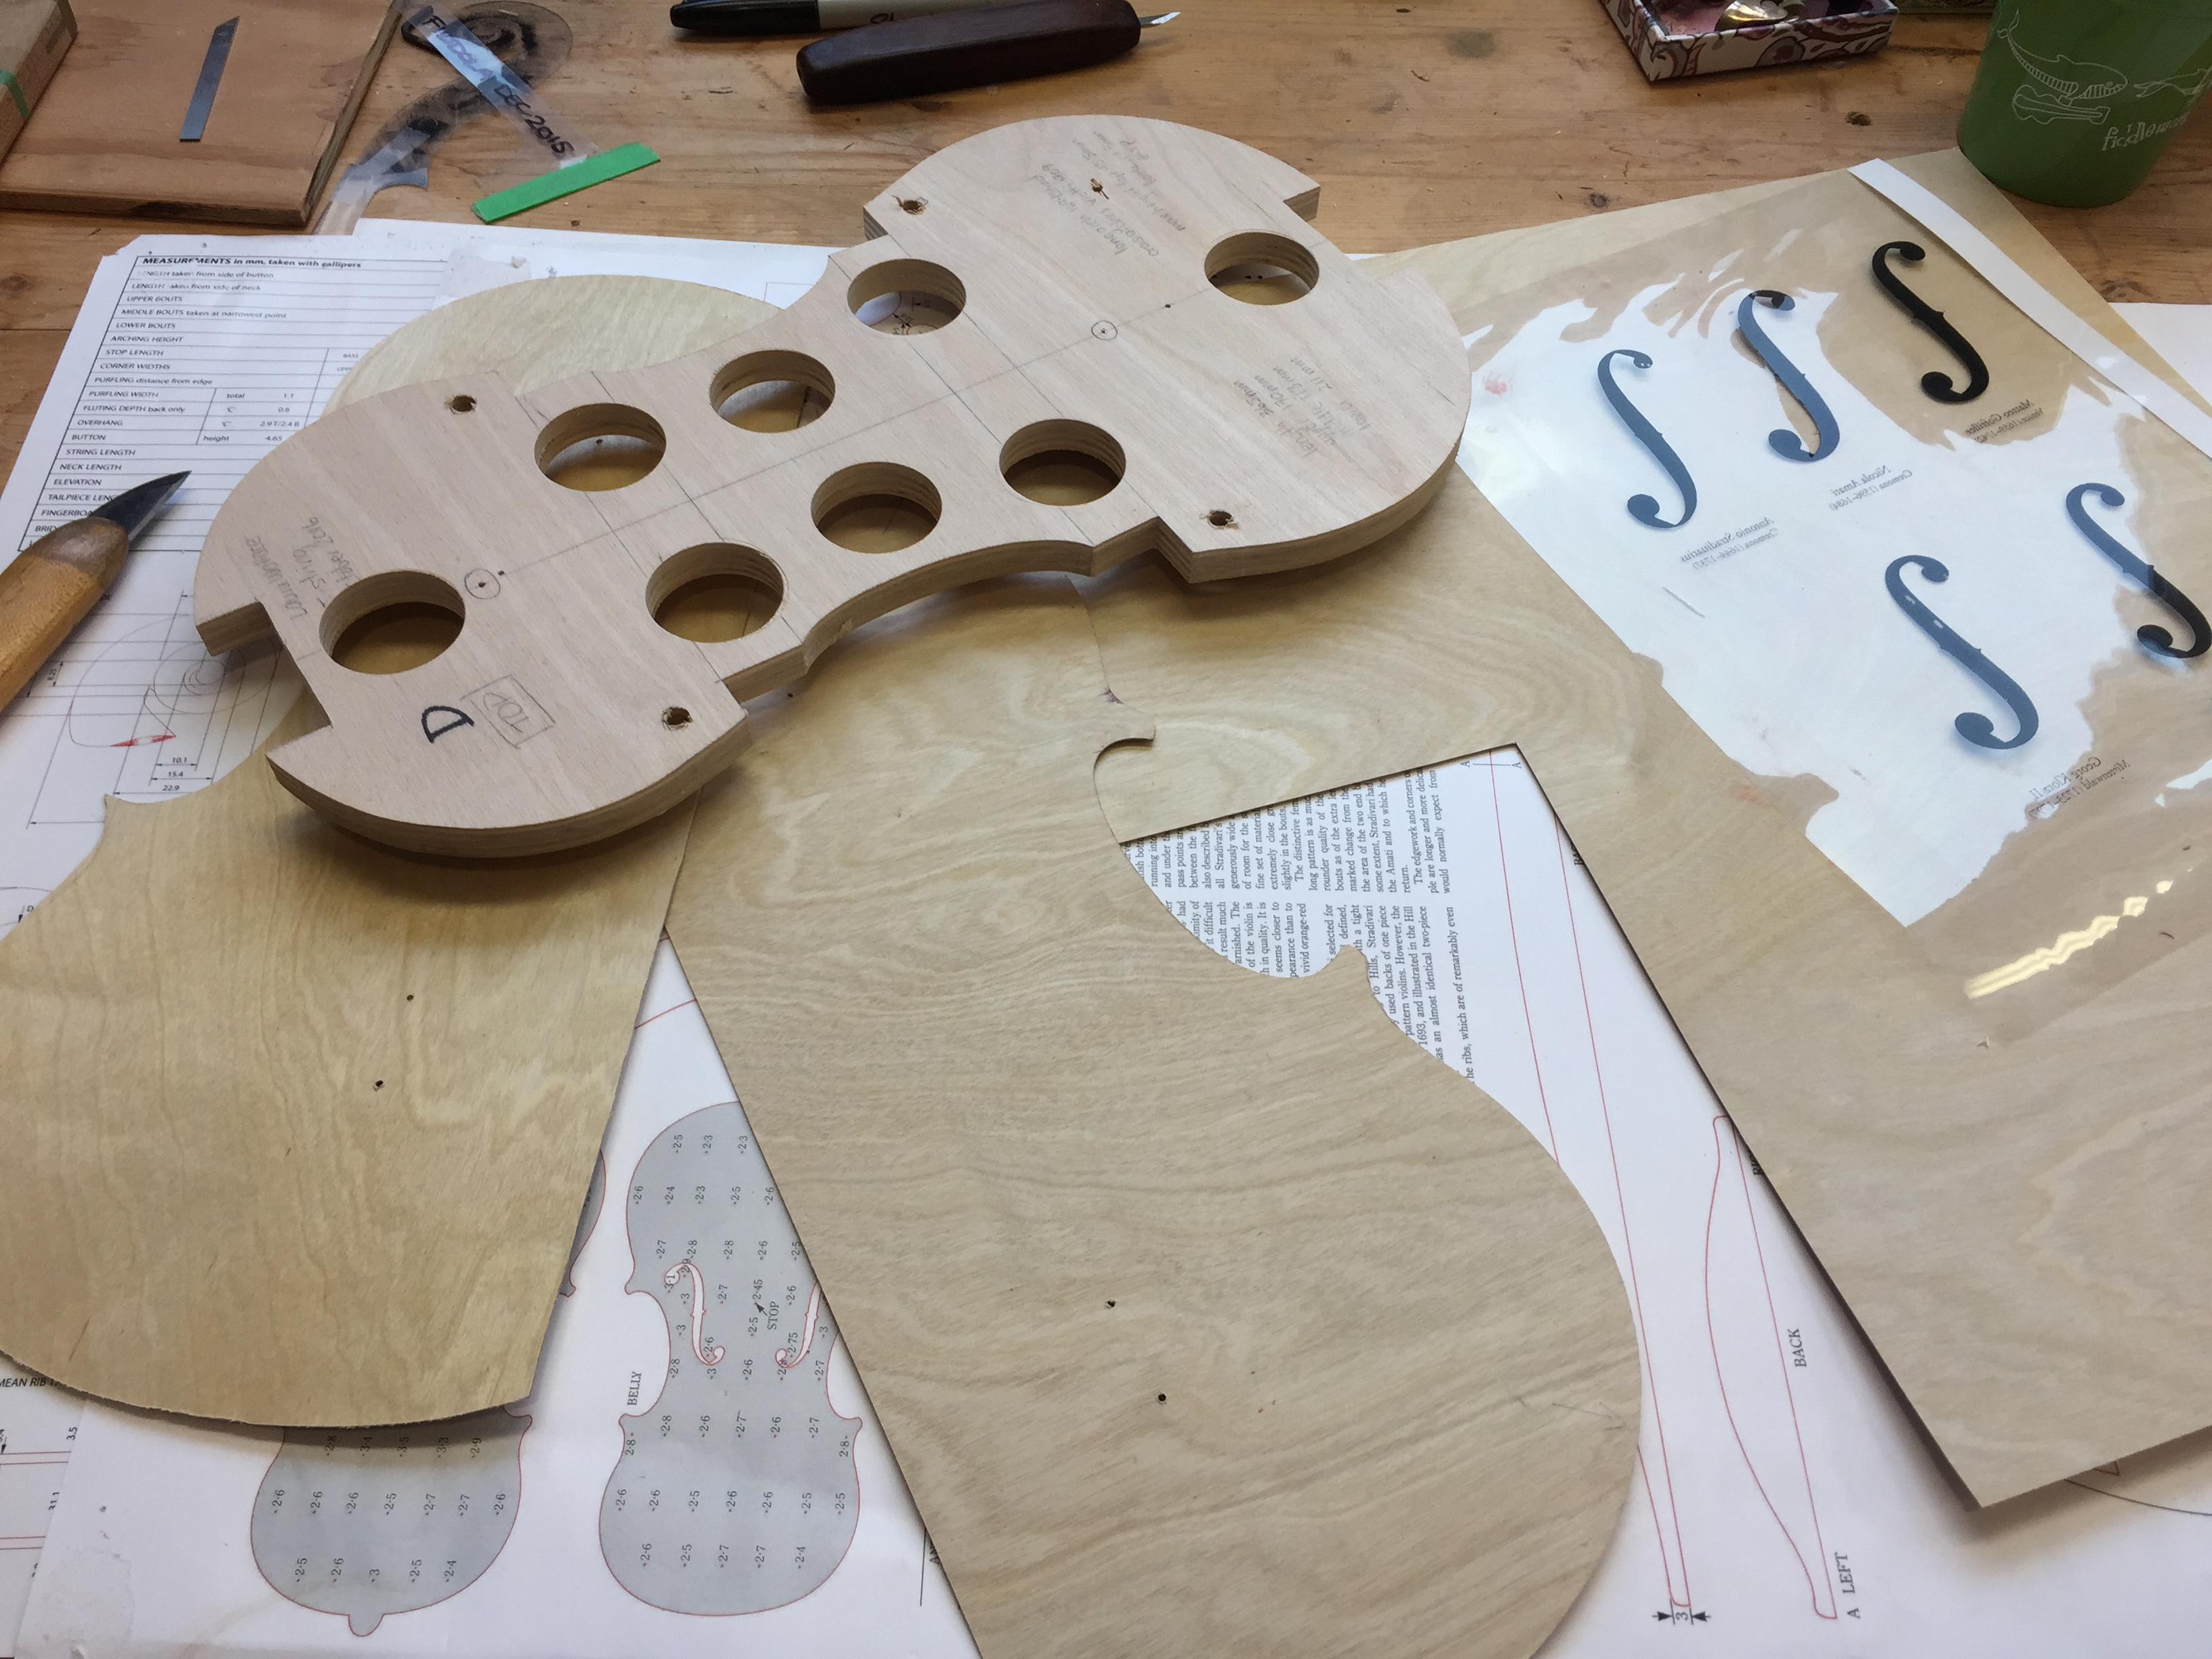 Model development and template making for new 5-string